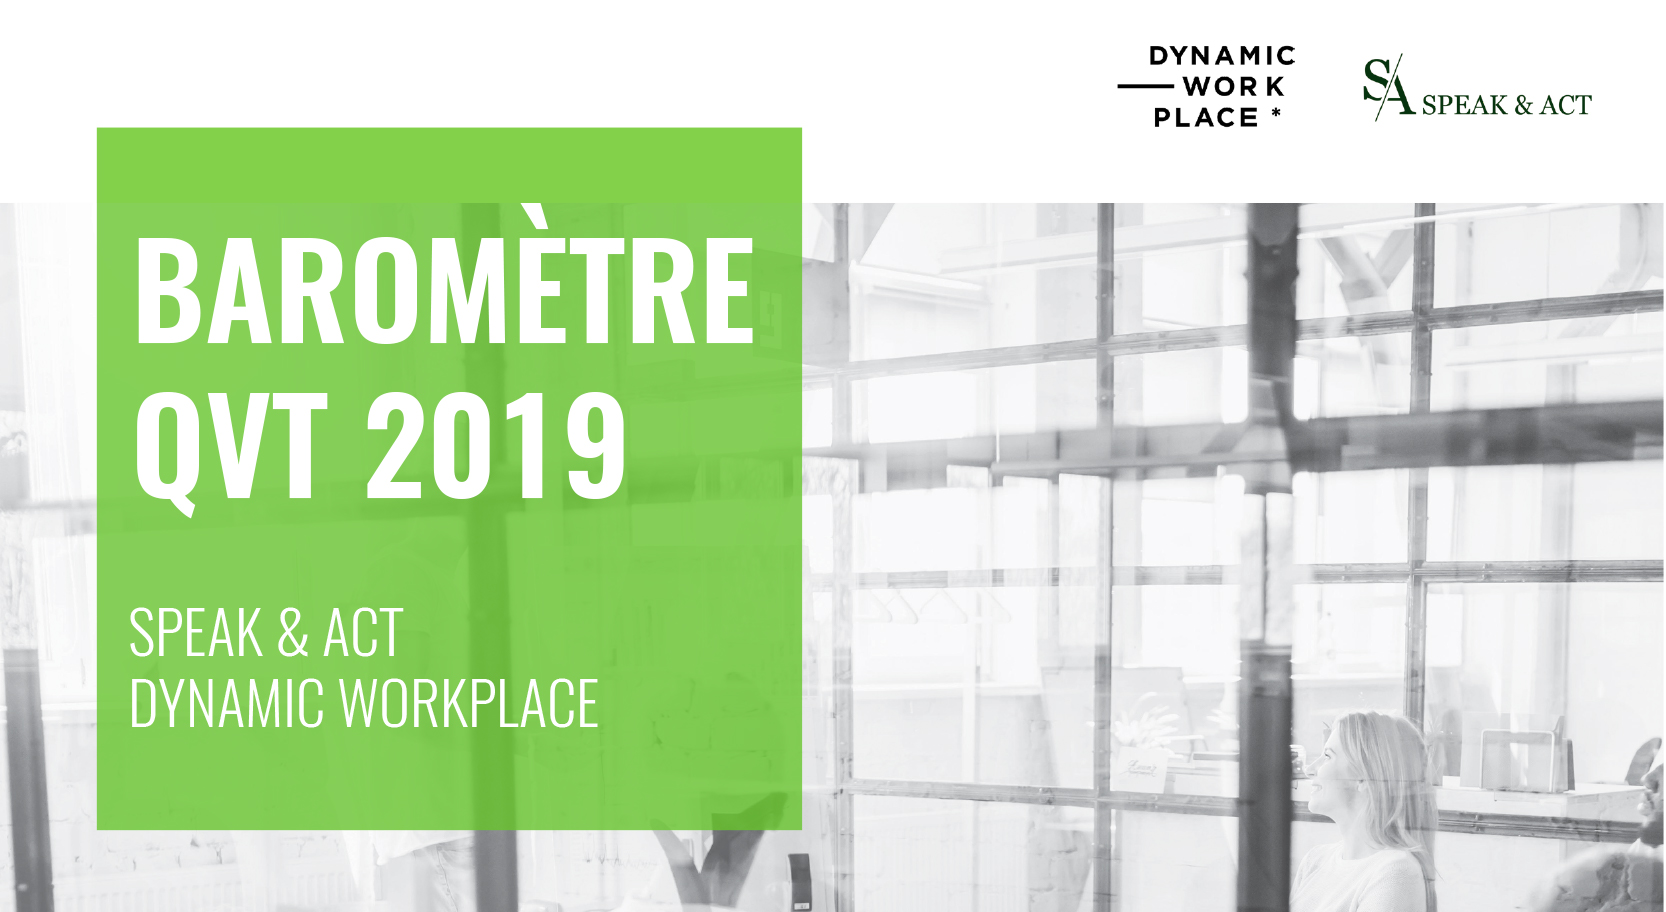 Baromètre #QVT 2019 Dynamic Workplace et Speak & Act